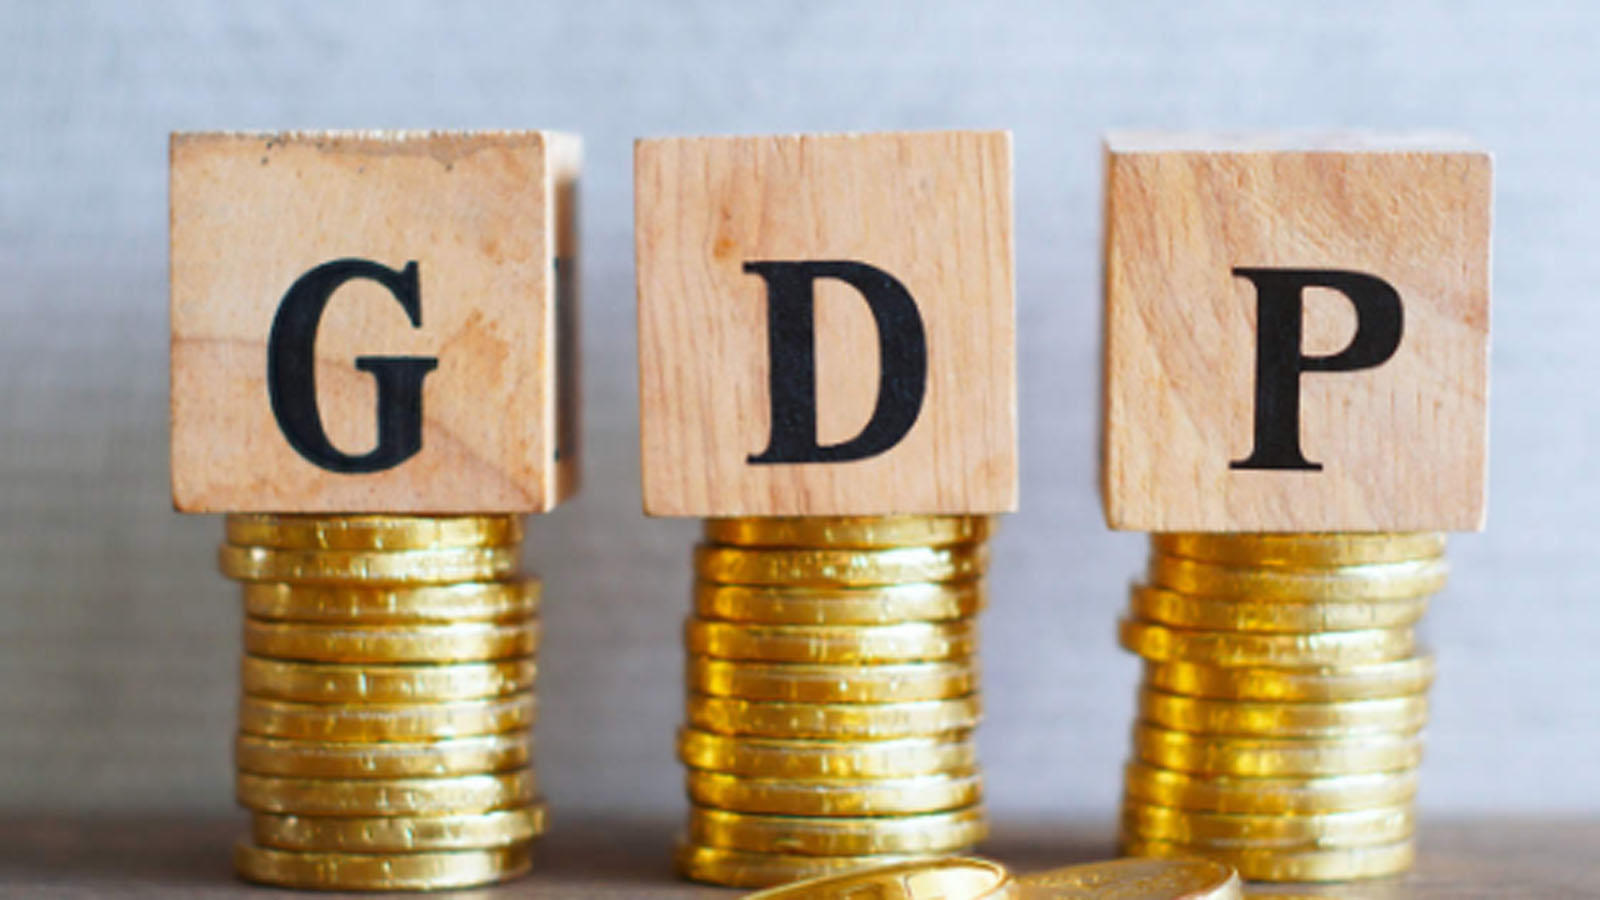 gdp-growth-slows-to-3-1-in-q4